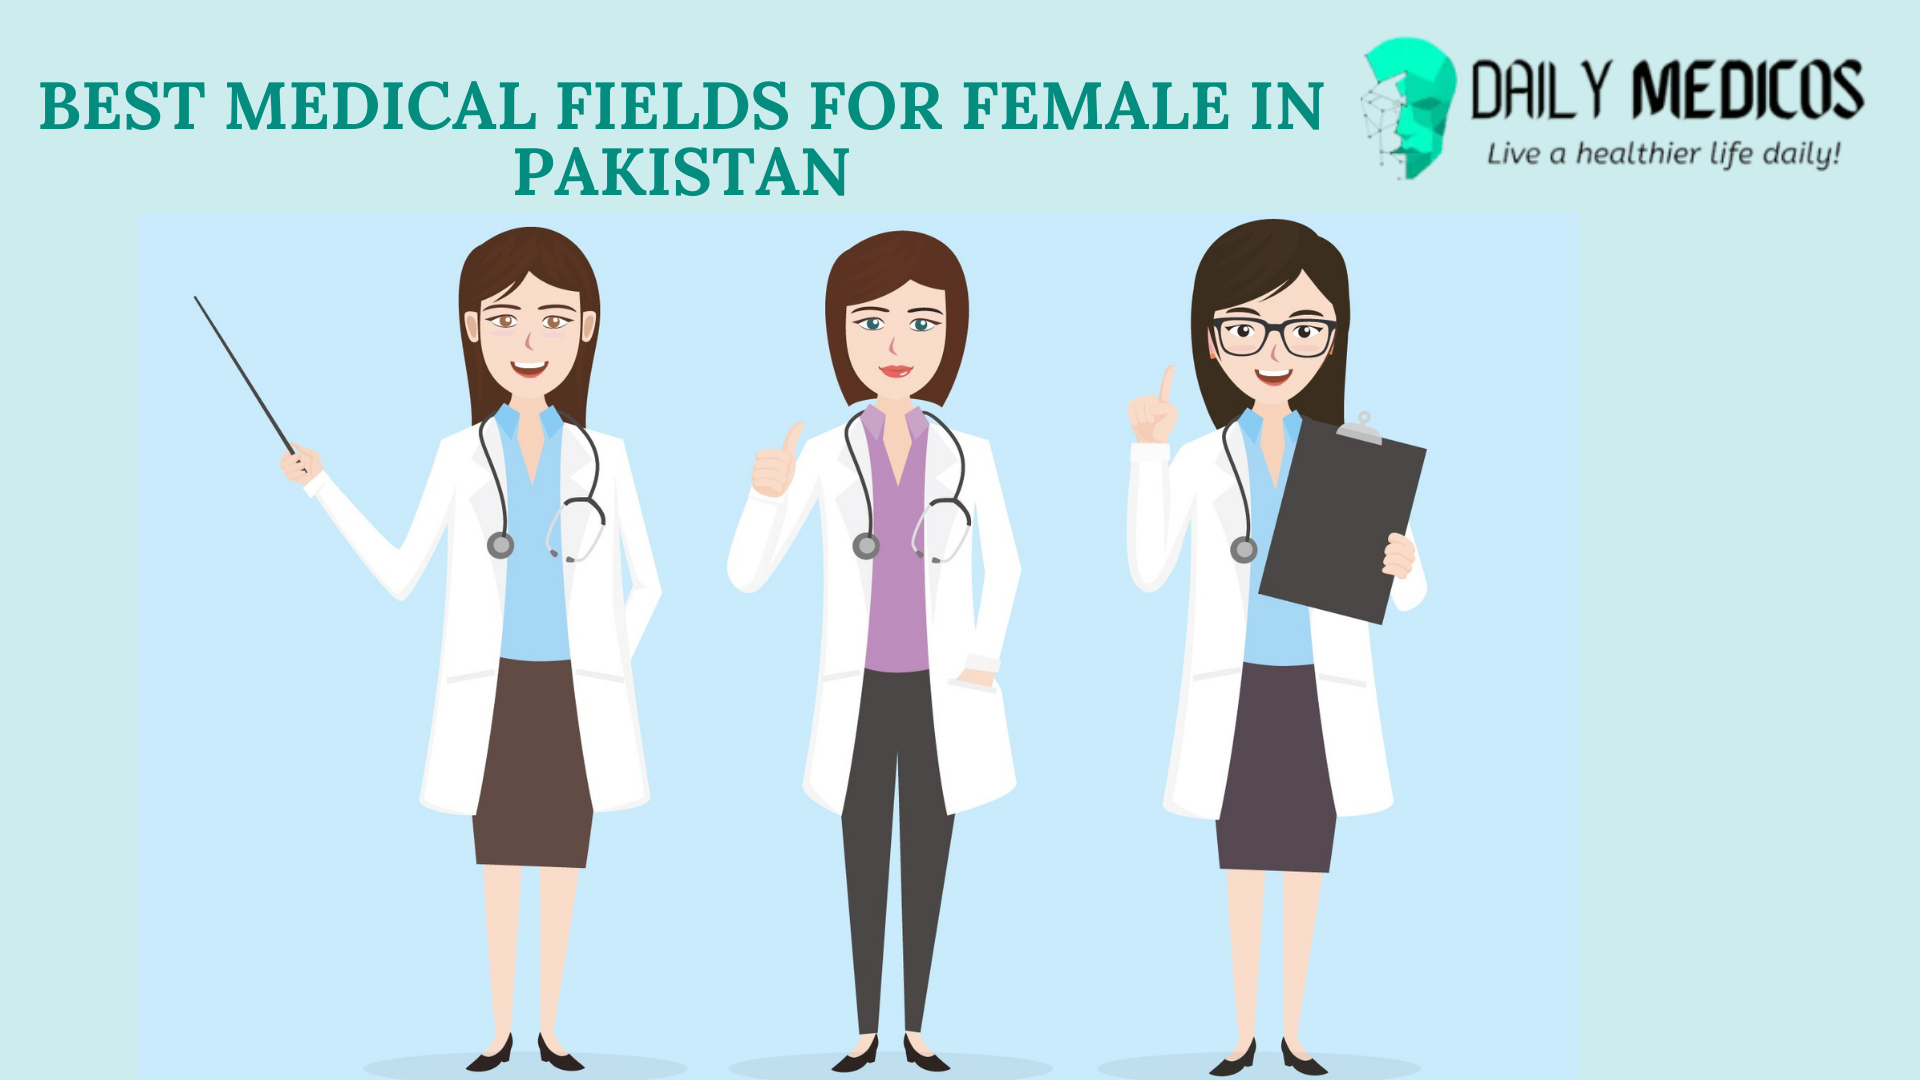 Top 05 Best Medical Fields for Female in Pakistan [Detailed Guide] 1 - Daily Medicos